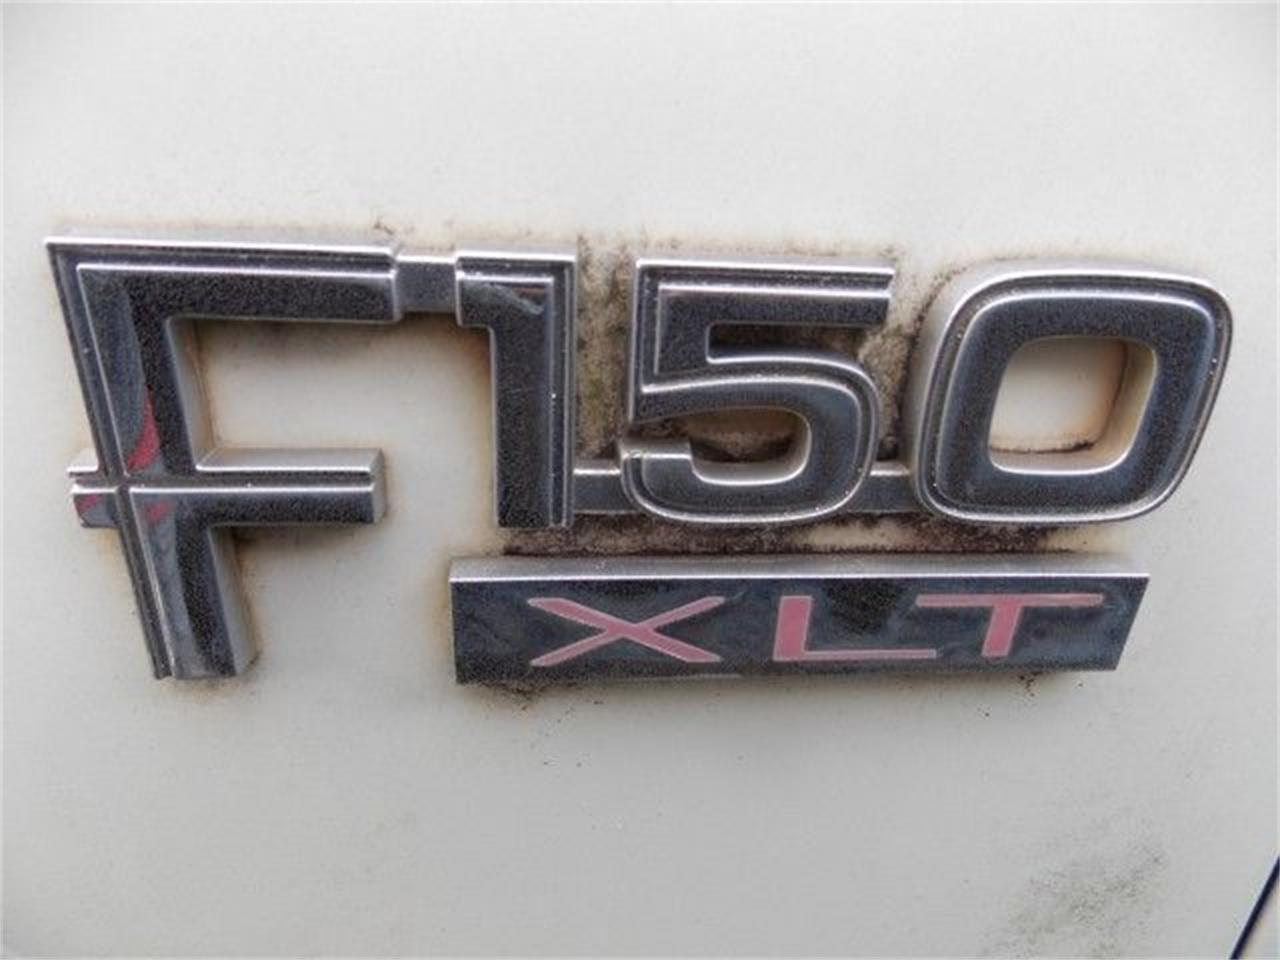 1986 Ford F150 for sale in Cadillac, MI – photo 3